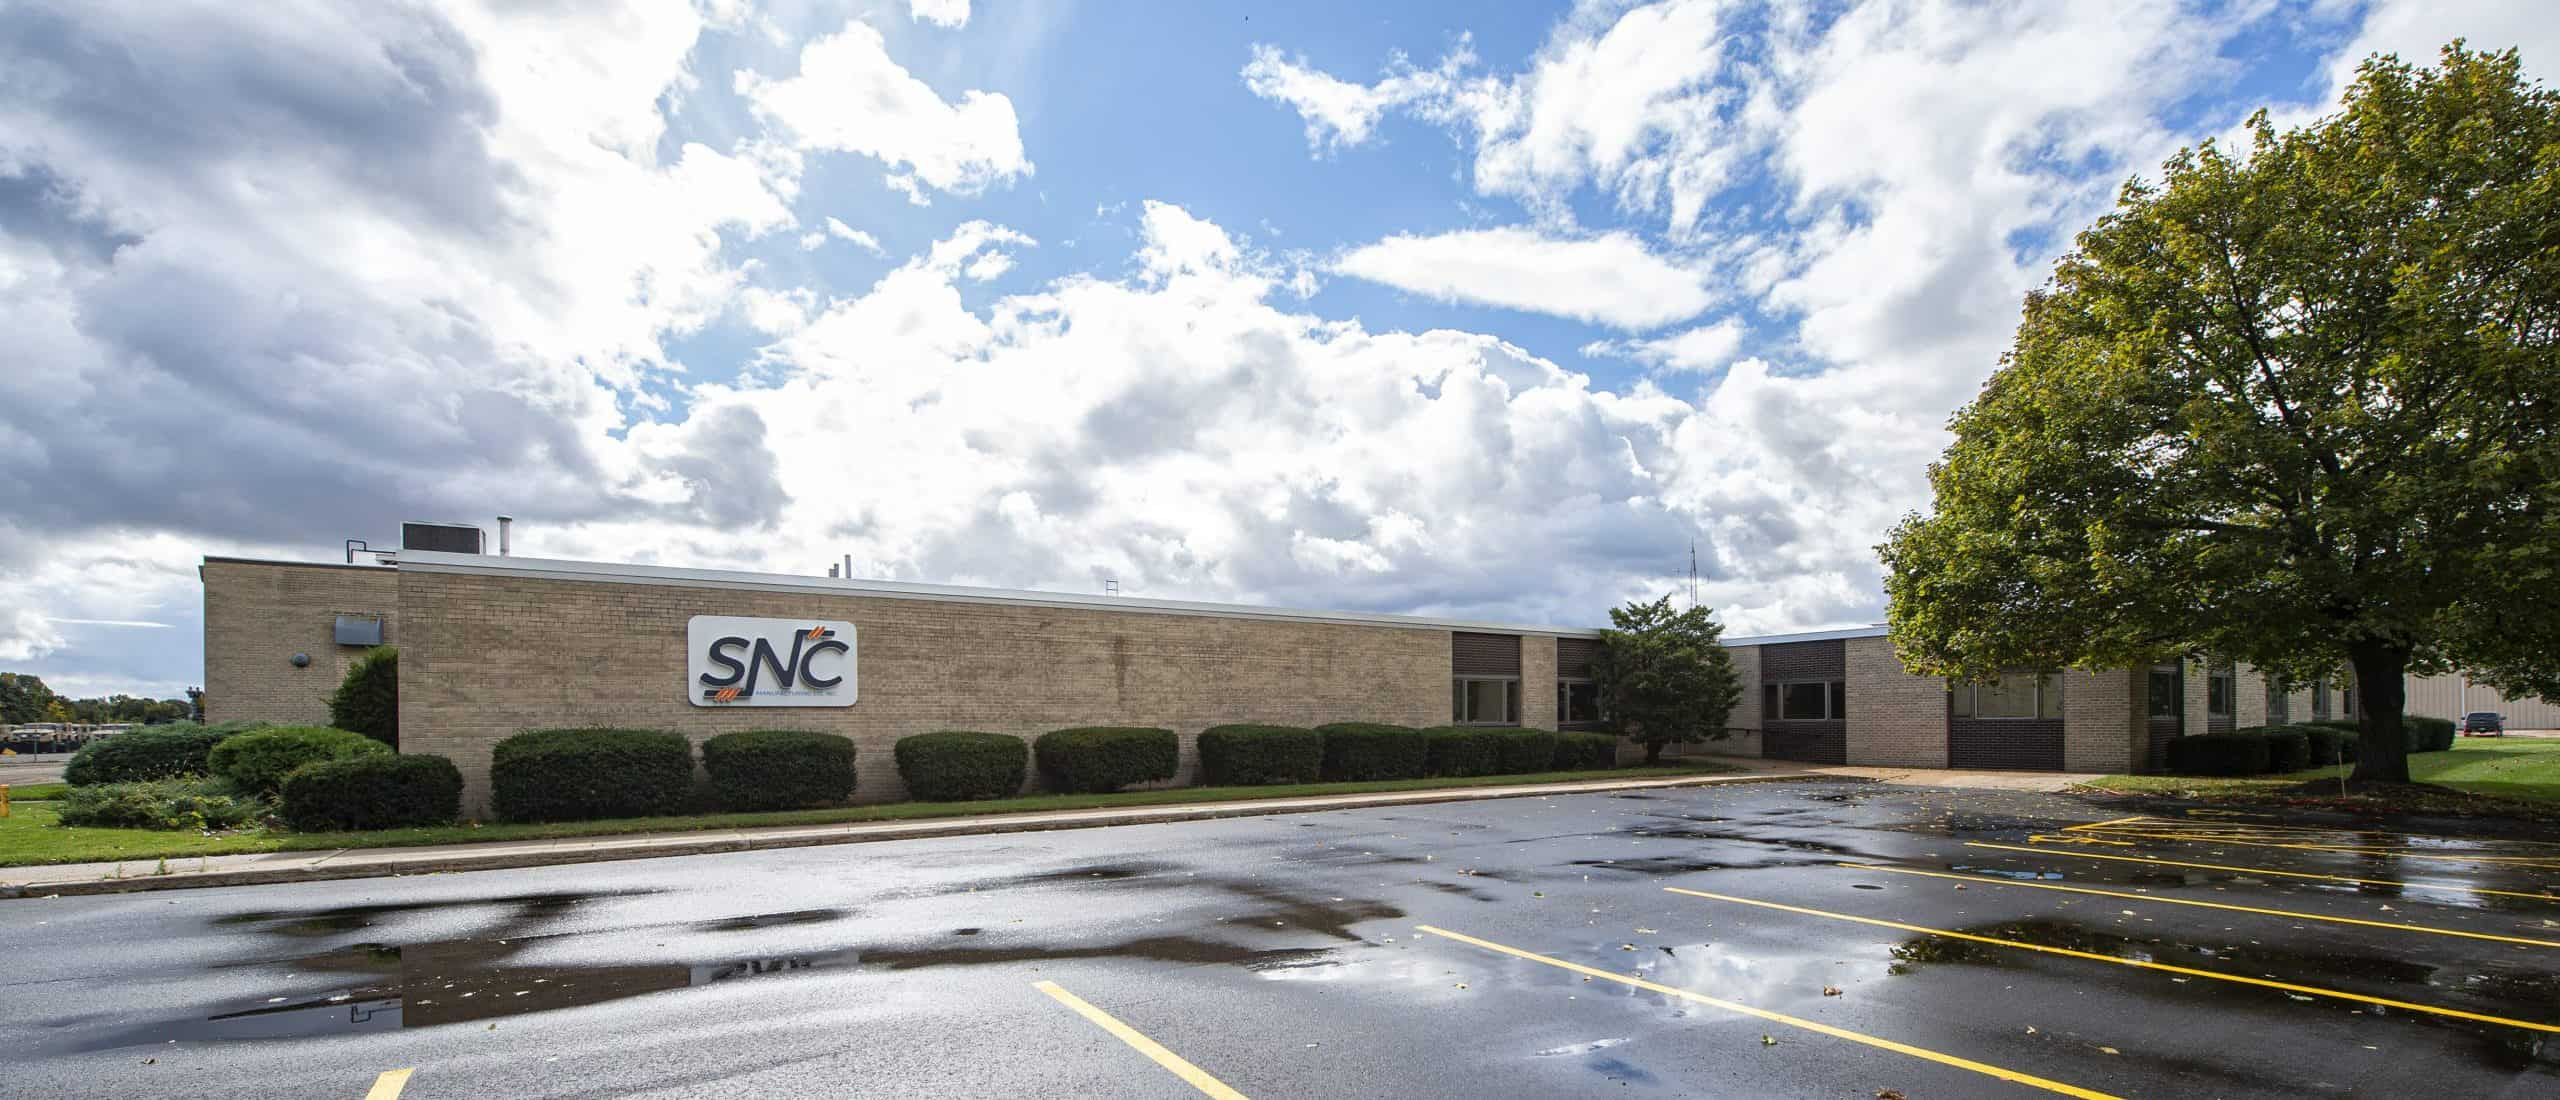 SNC Manufacturing Co., Inc. building exterior.